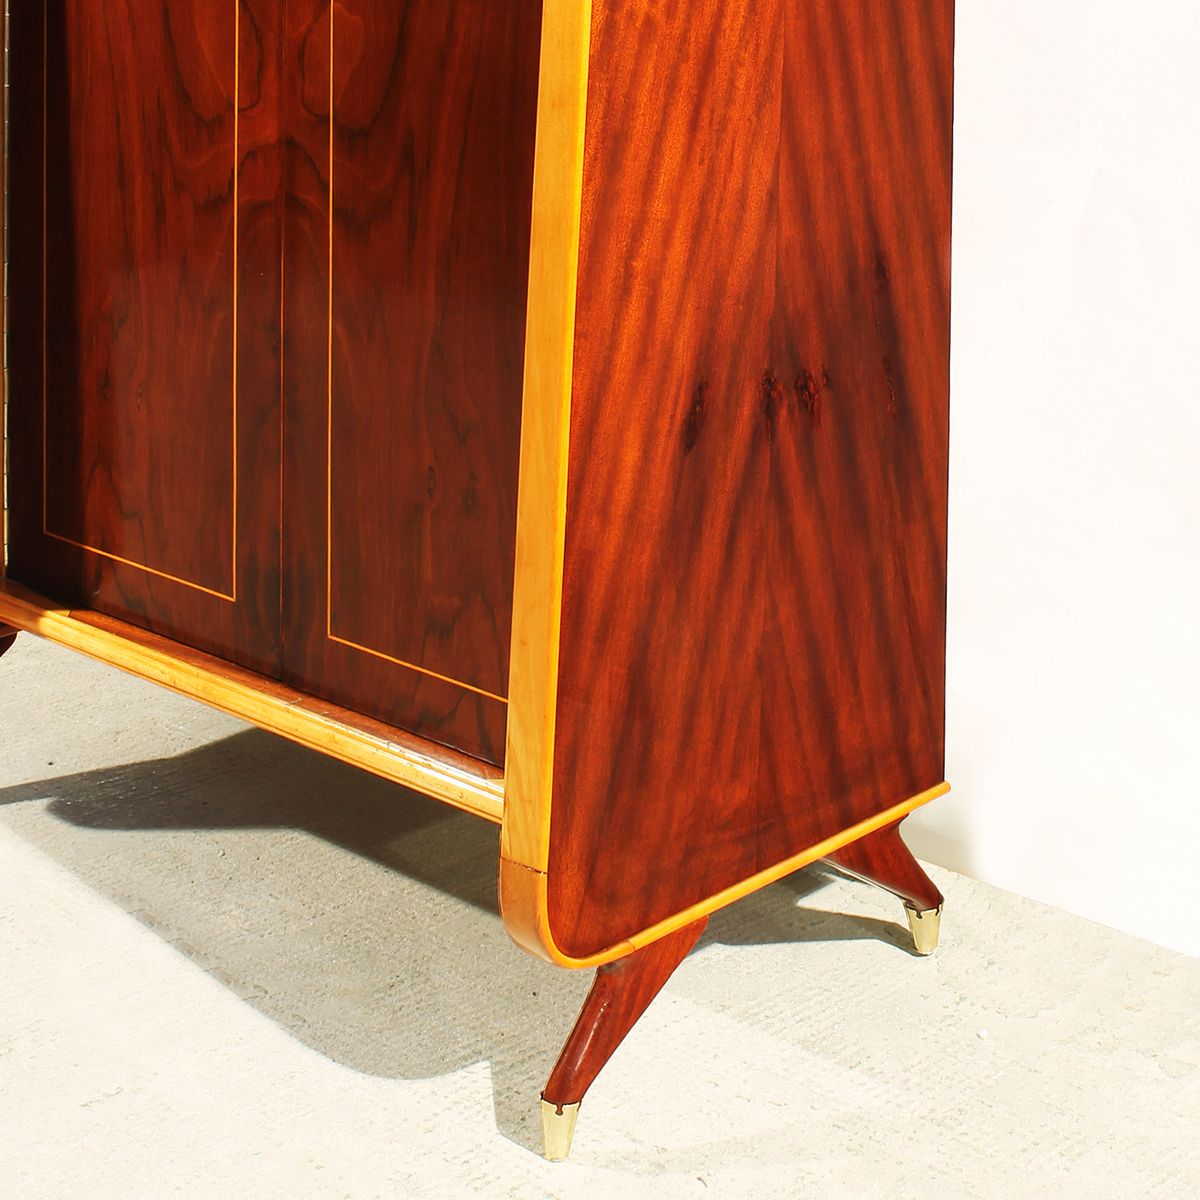 armoire en acajou et palissandre italie 1950s en vente sur pamono. Black Bedroom Furniture Sets. Home Design Ideas